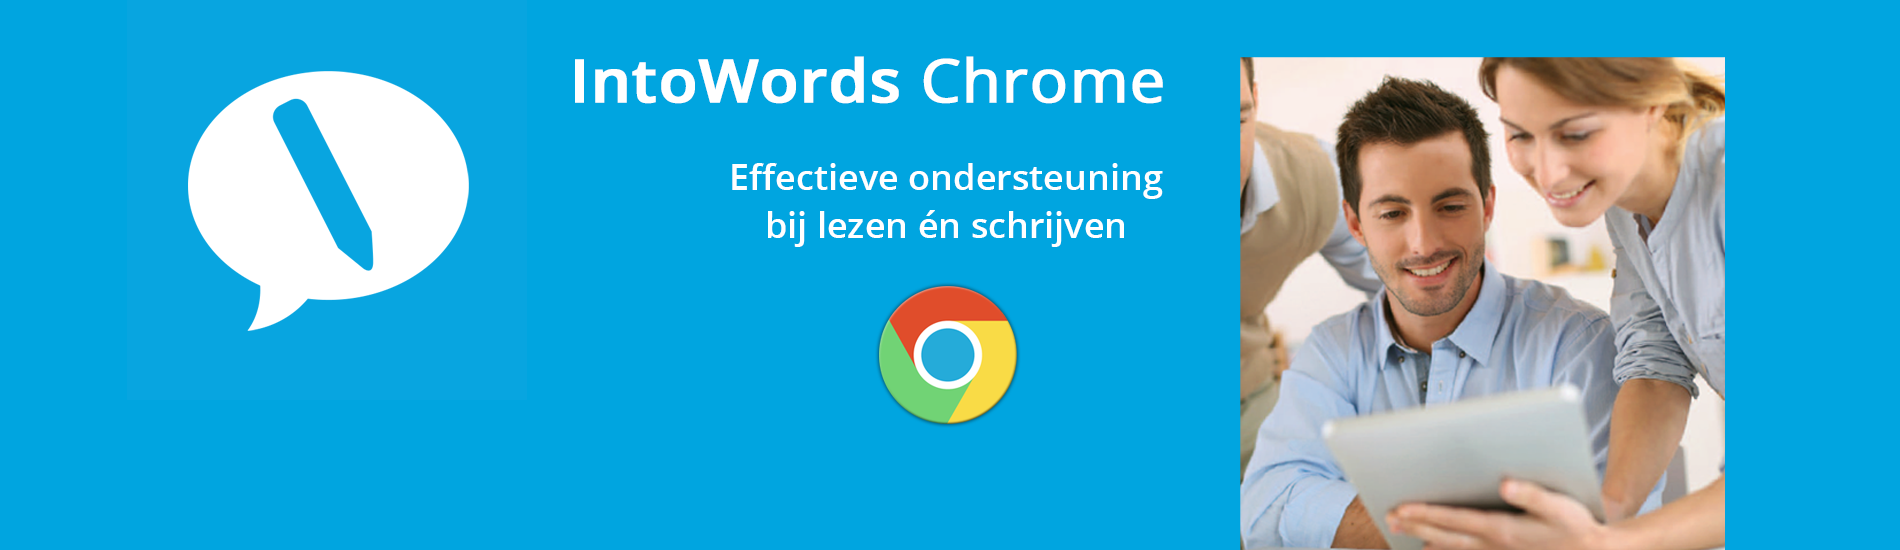 slider intowords chrome